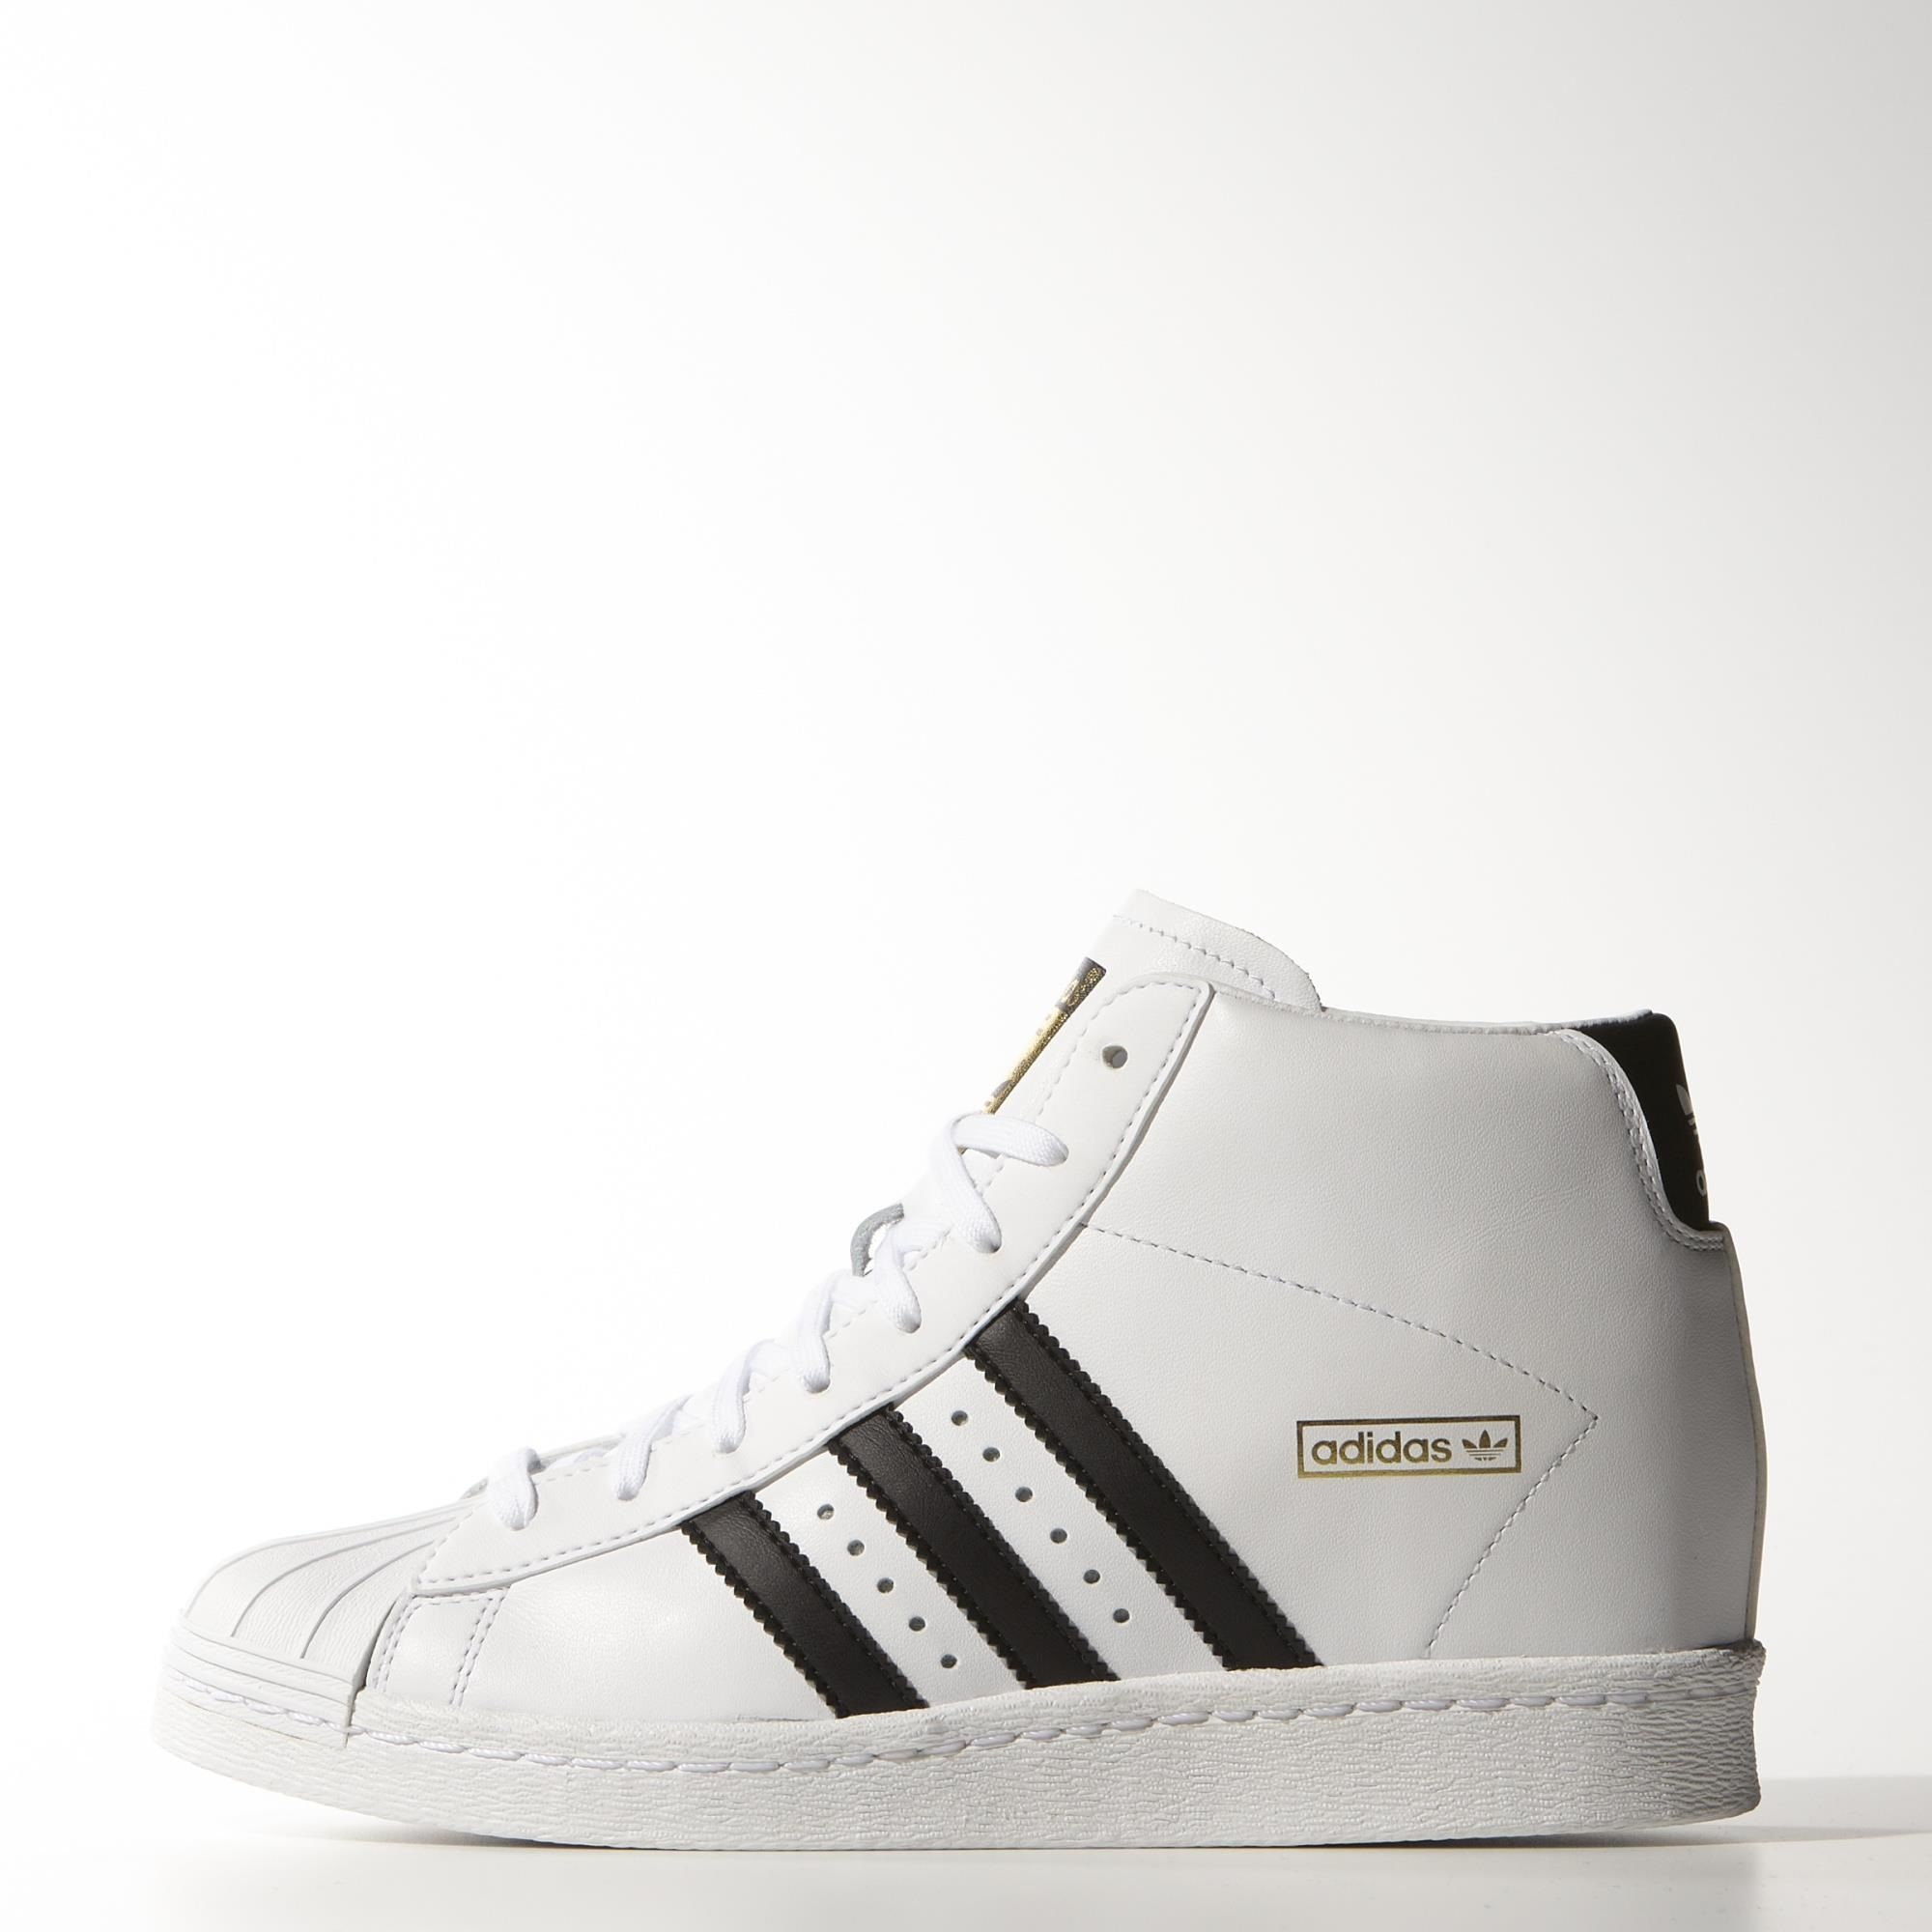 adidas - Tenis Originals Superstar Up Mujer  adaca11a108a2